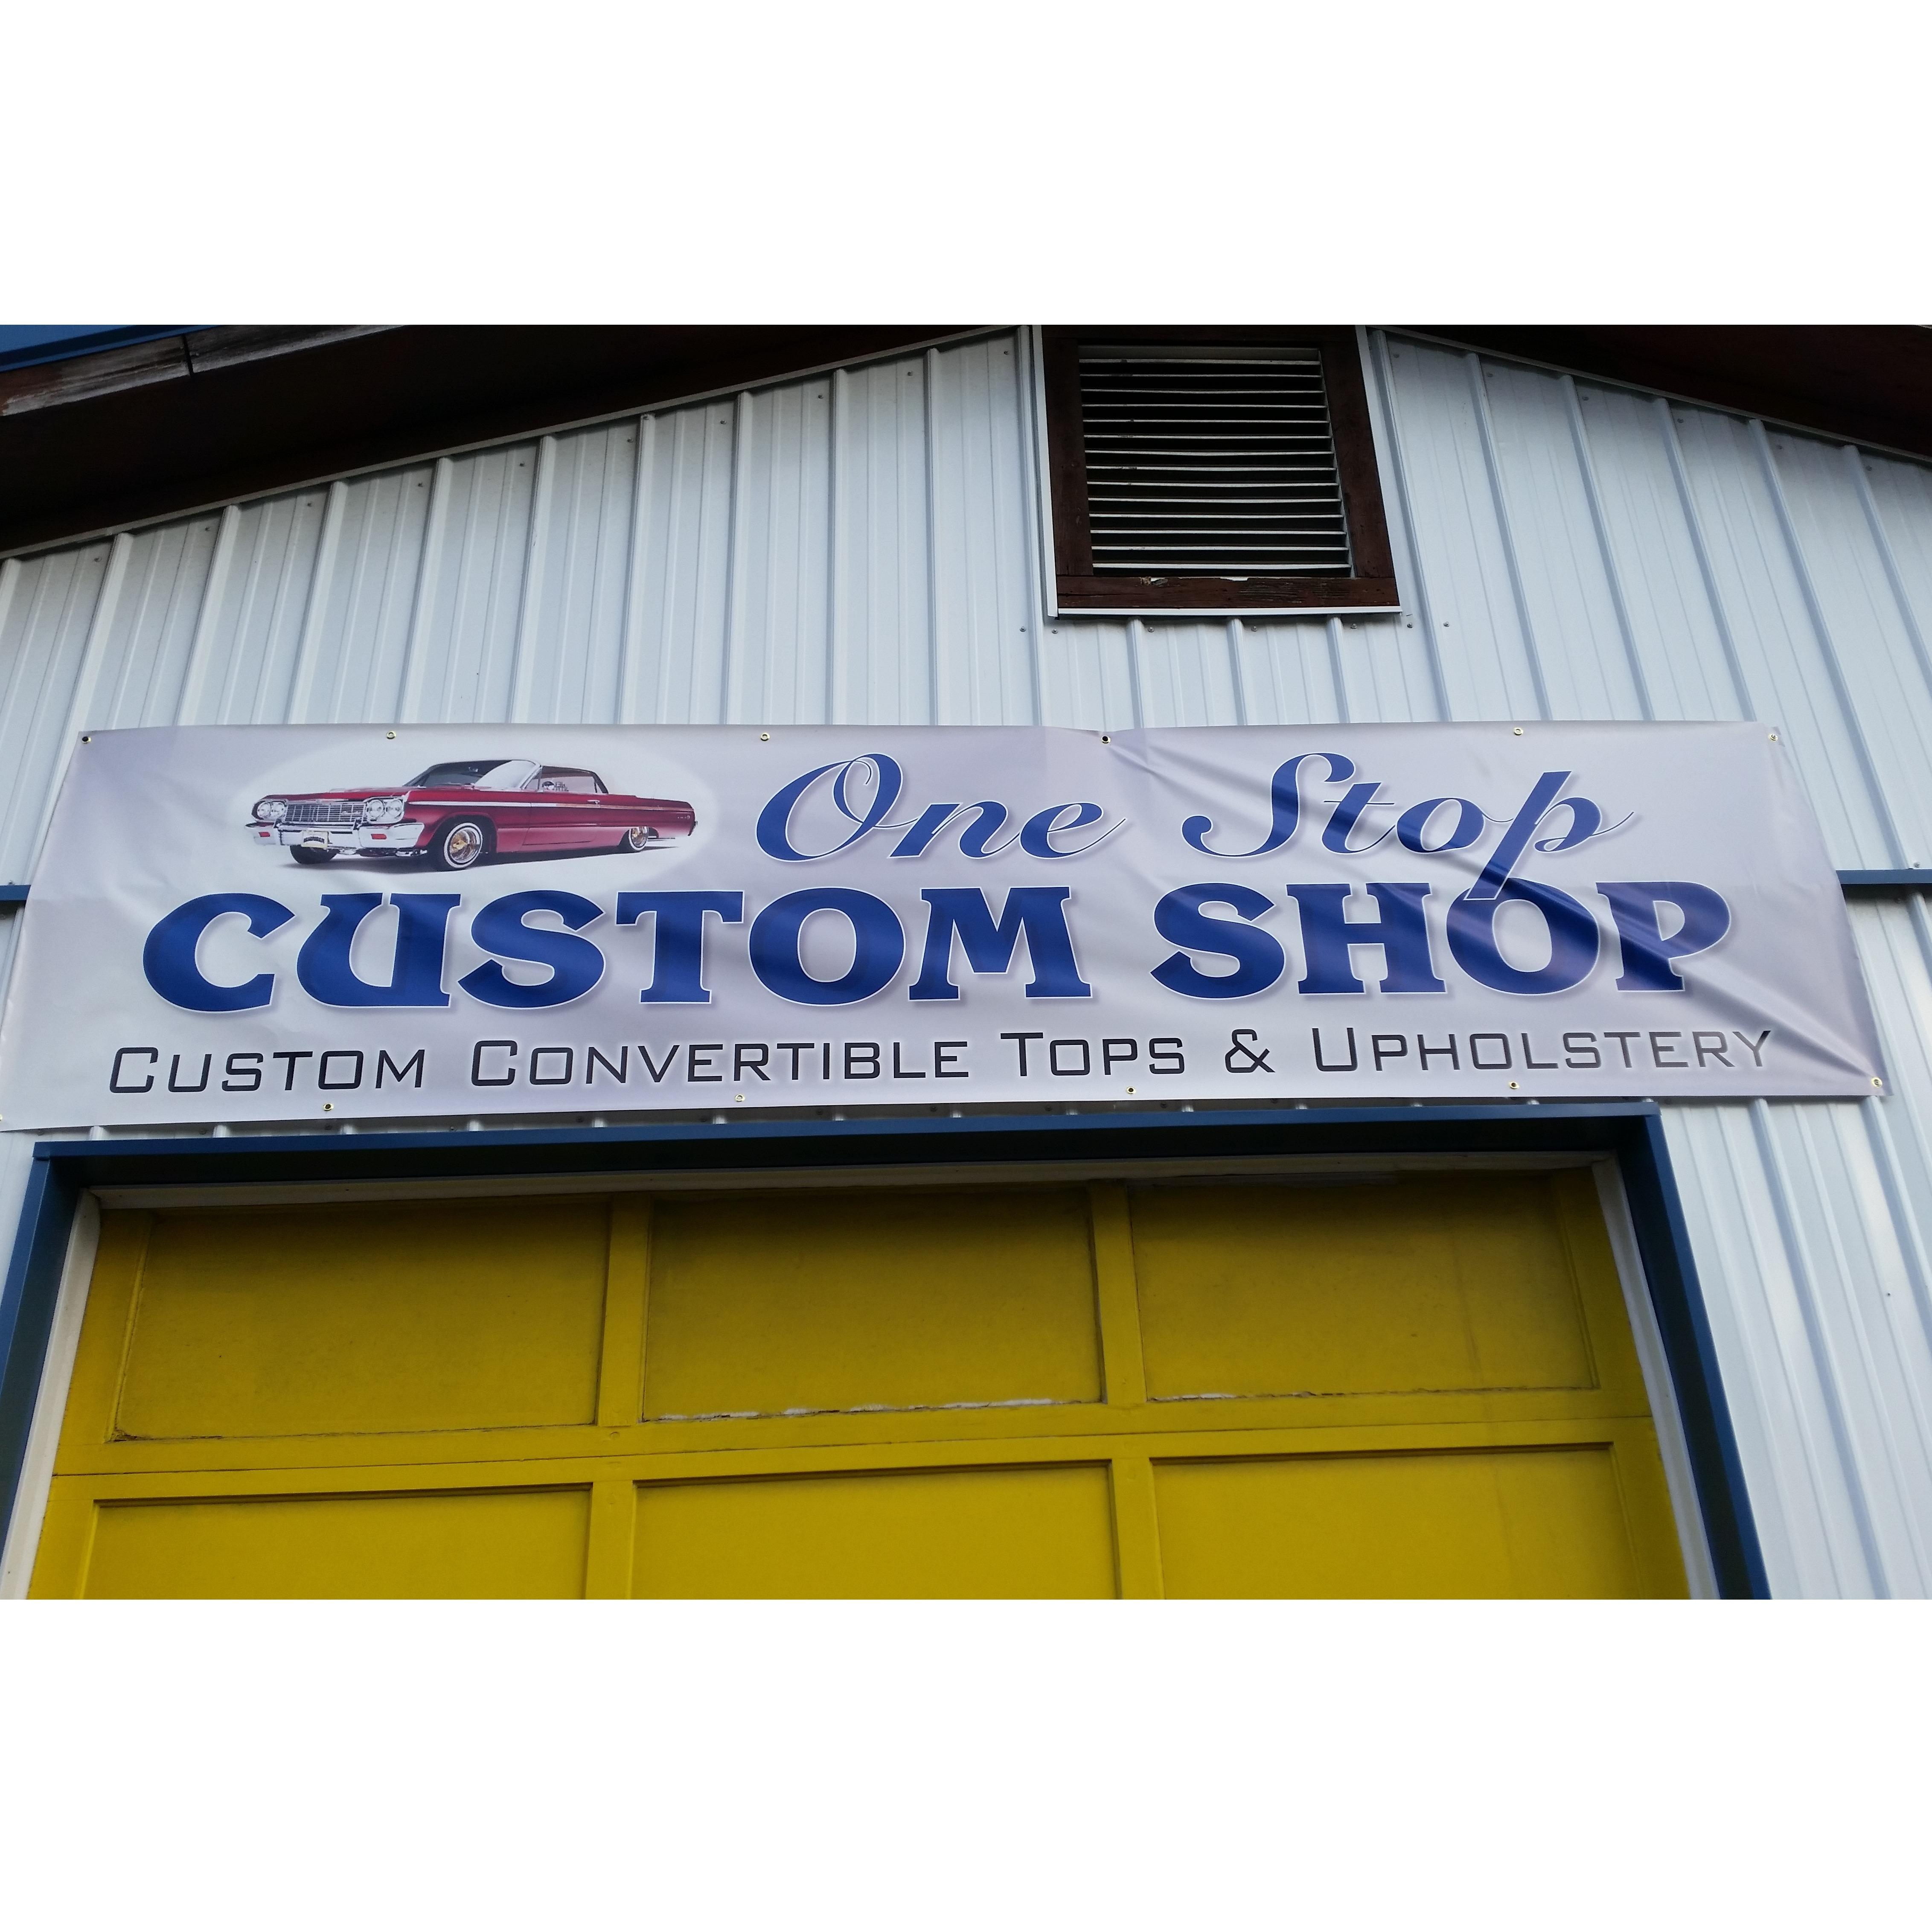 one stop custom shop custom convertible tops and upholstery coupons near me in jamestown 8coupons. Black Bedroom Furniture Sets. Home Design Ideas